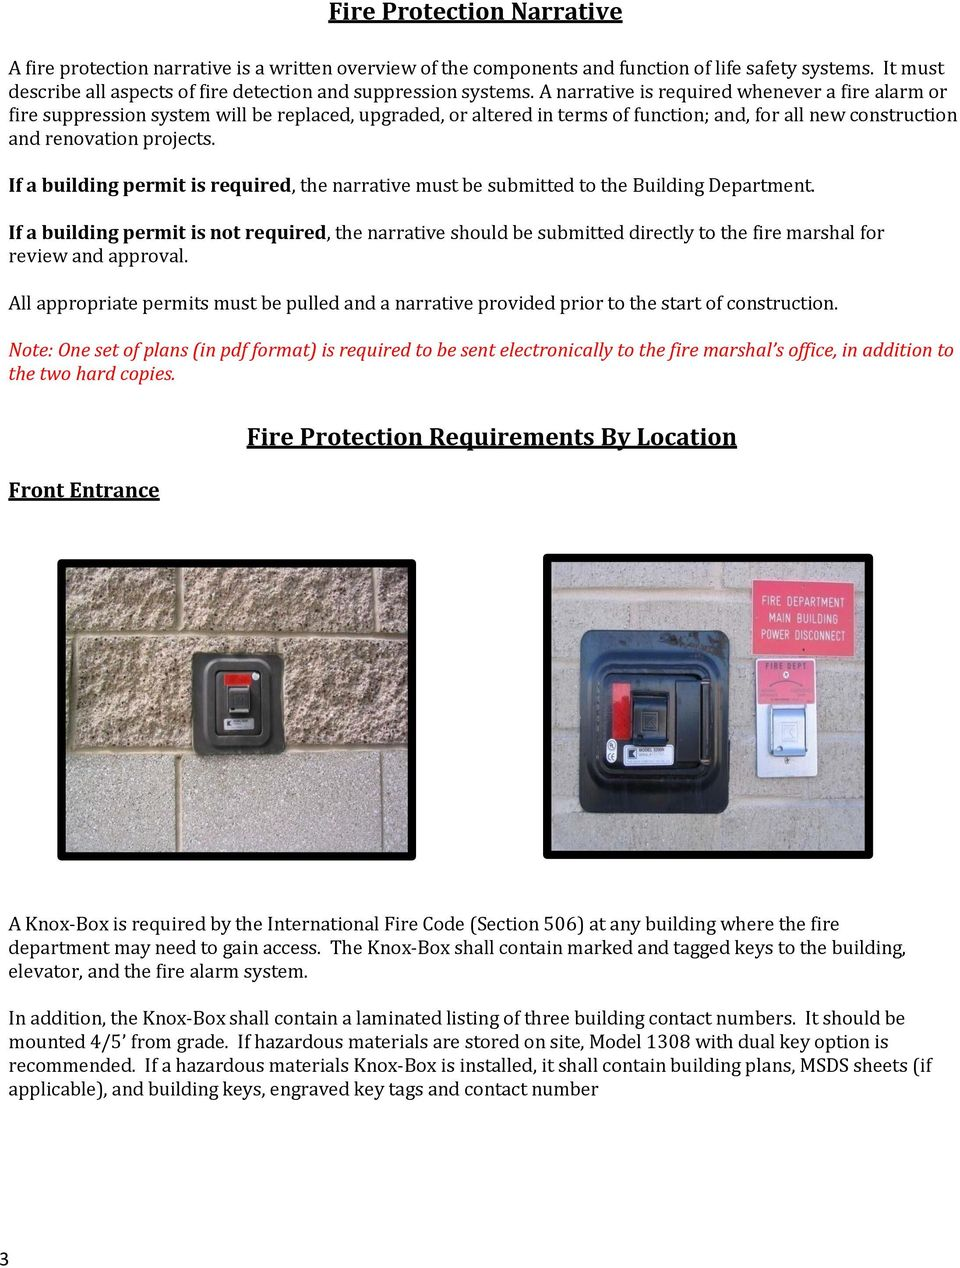 A narrative is required whenever a fire alarm or fire suppression system will be replaced, upgraded, or altered in terms of function; and, for all new construction and renovation projects.